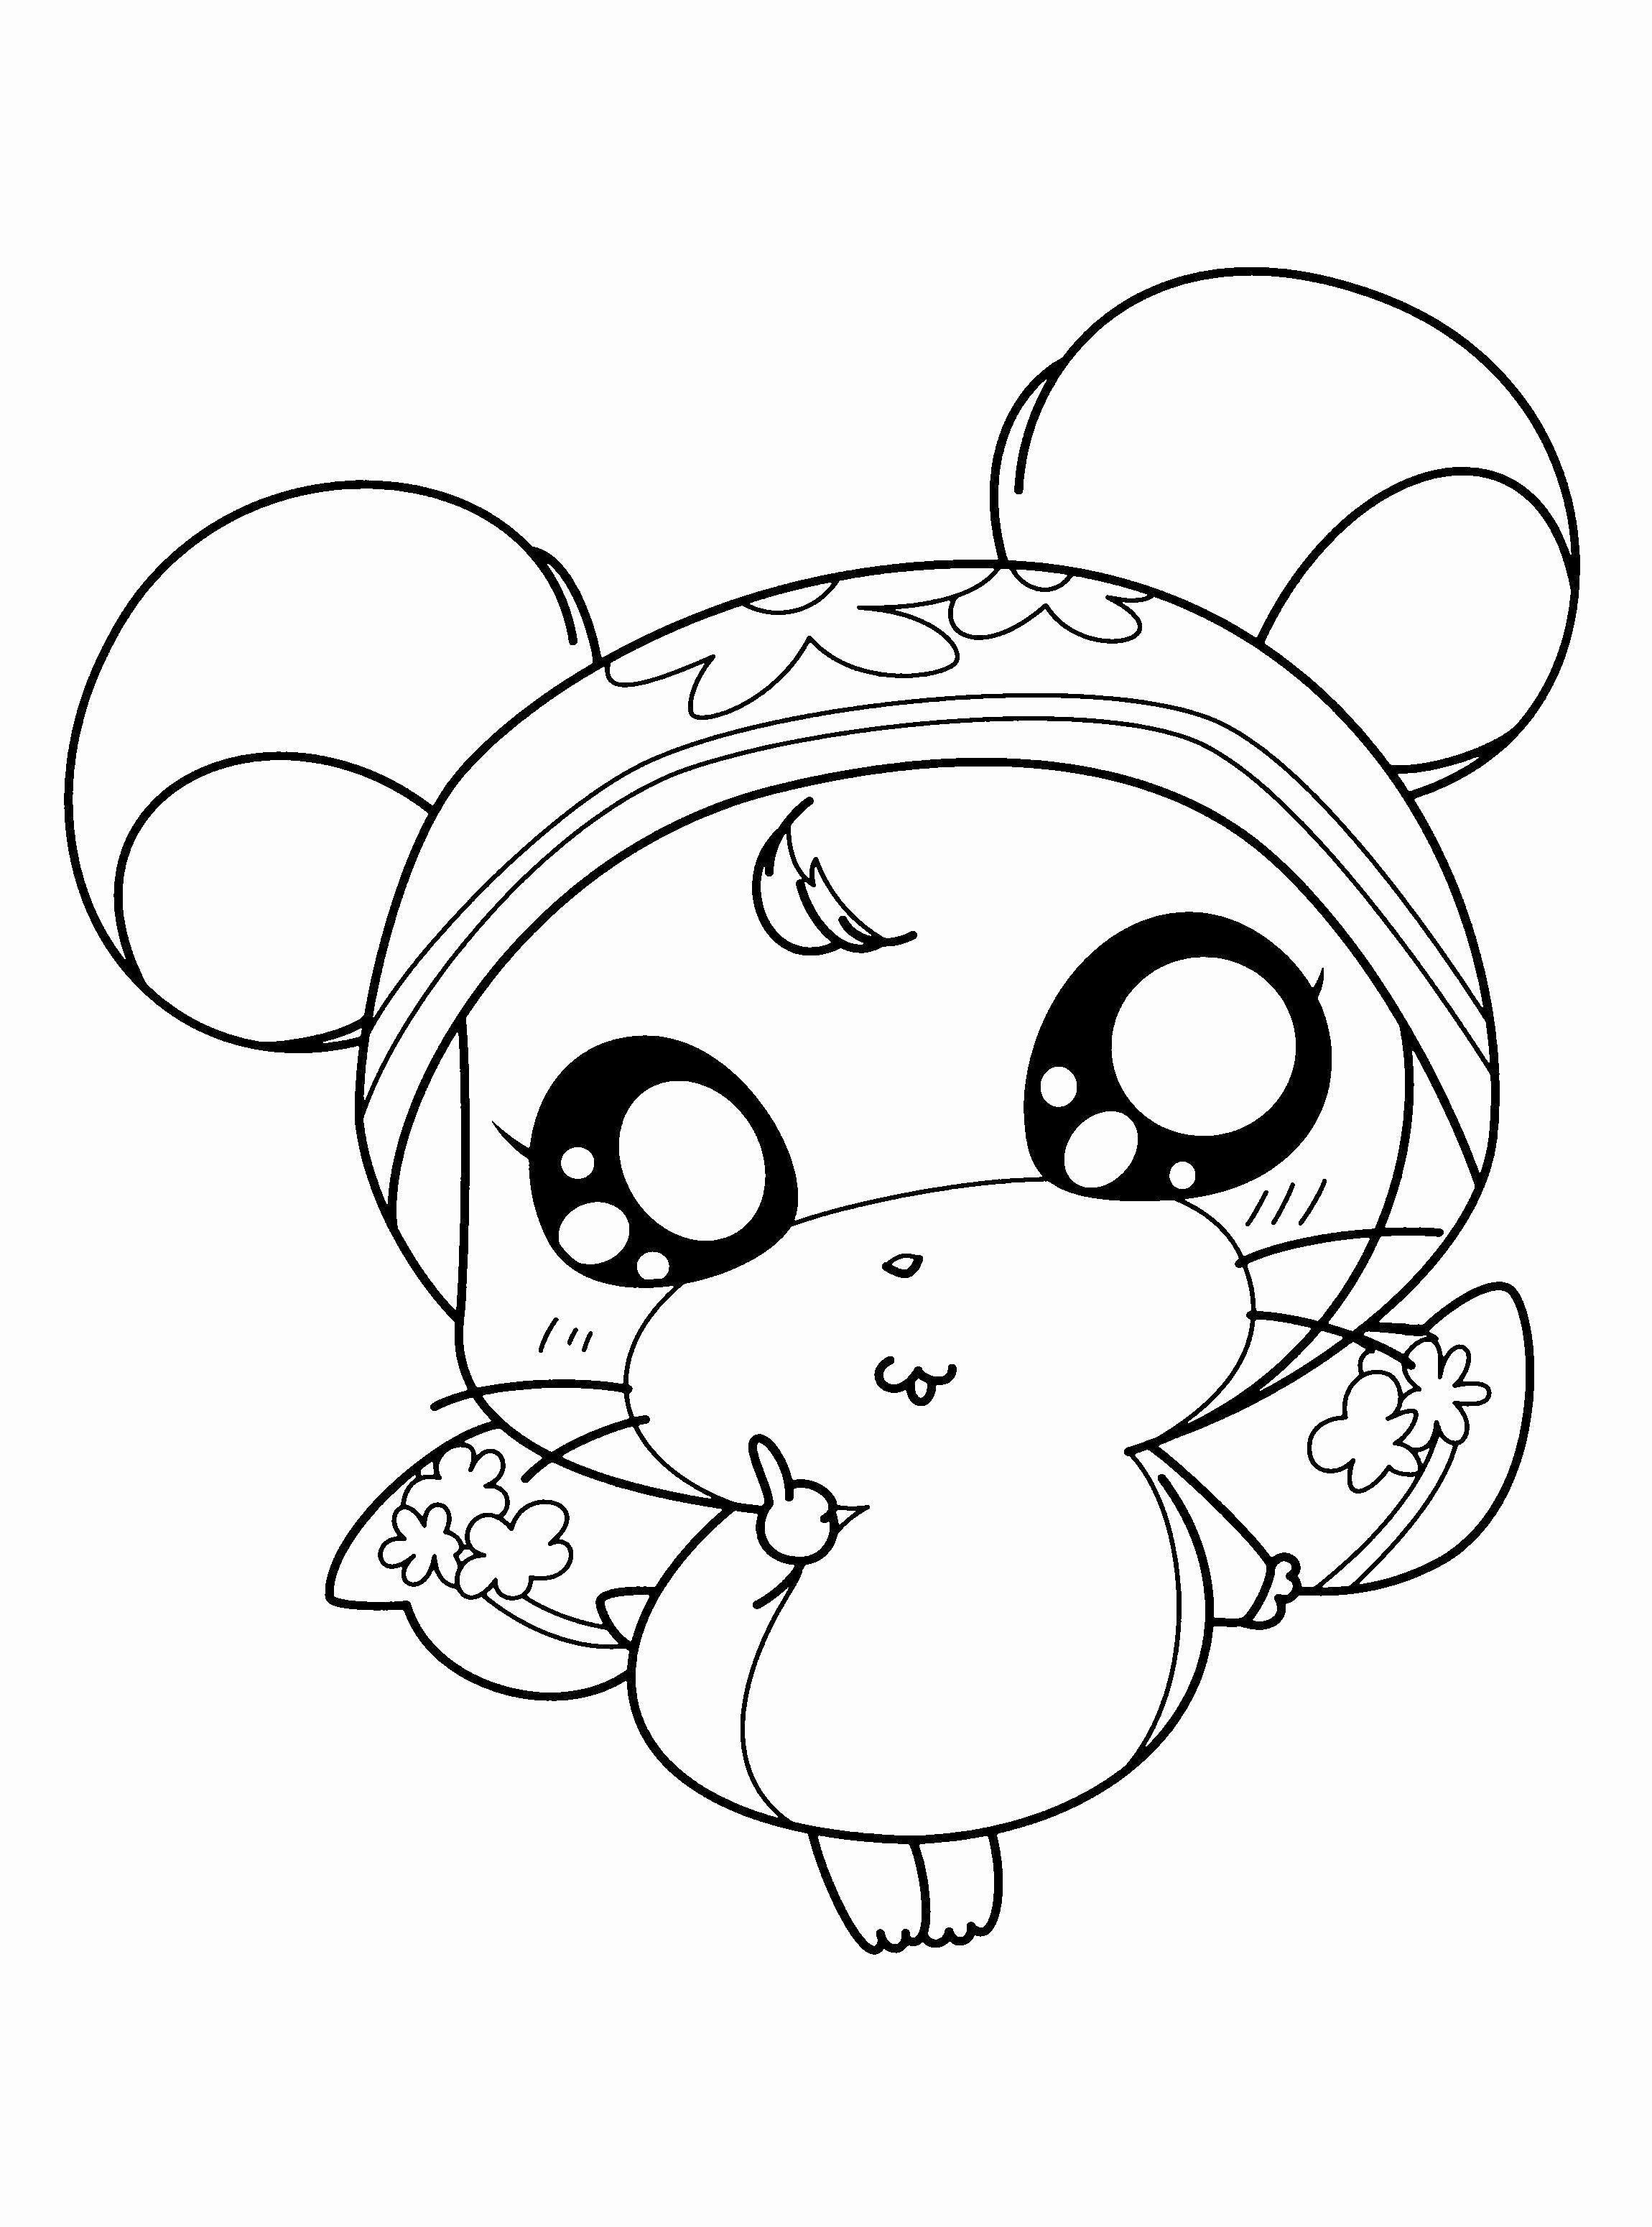 Jungle Printable Coloring Pages Fresh Jungle Coloring Pages Pokemon Coloring Pages Princess Coloring Pages Mandala Coloring Pages